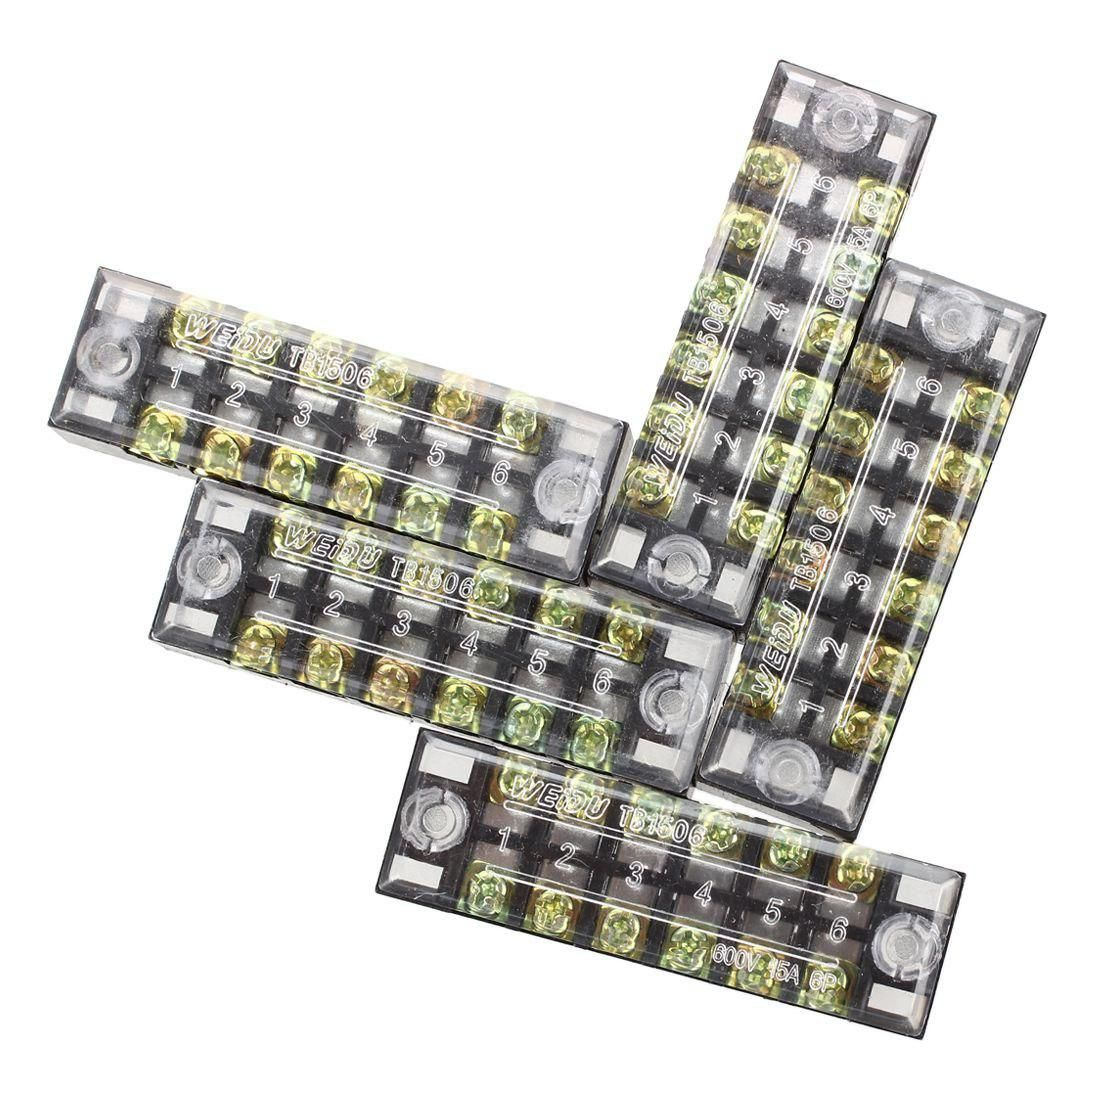 5 Pcs 600V 15A 6 Positions 2 Rows Barrier Screw Terminal Block Strip w  Cover. Yesterday's price: US $3.44 (3.02 EUR). Today's price: US $3.44  (3.04 EUR).